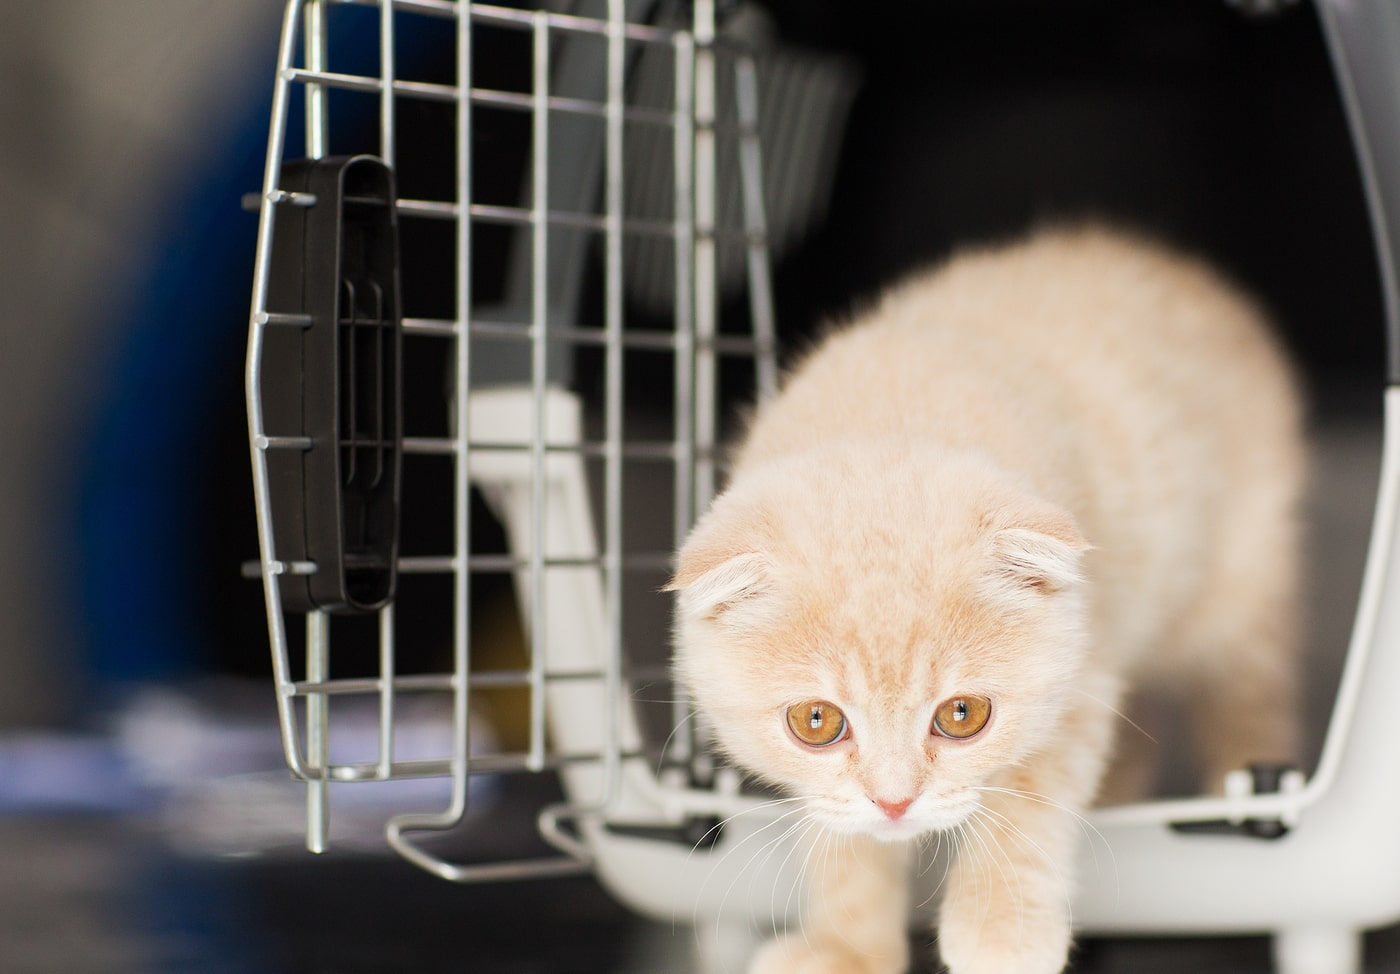 Scottish fold kitten with orange eyes walks out of cat carrier.